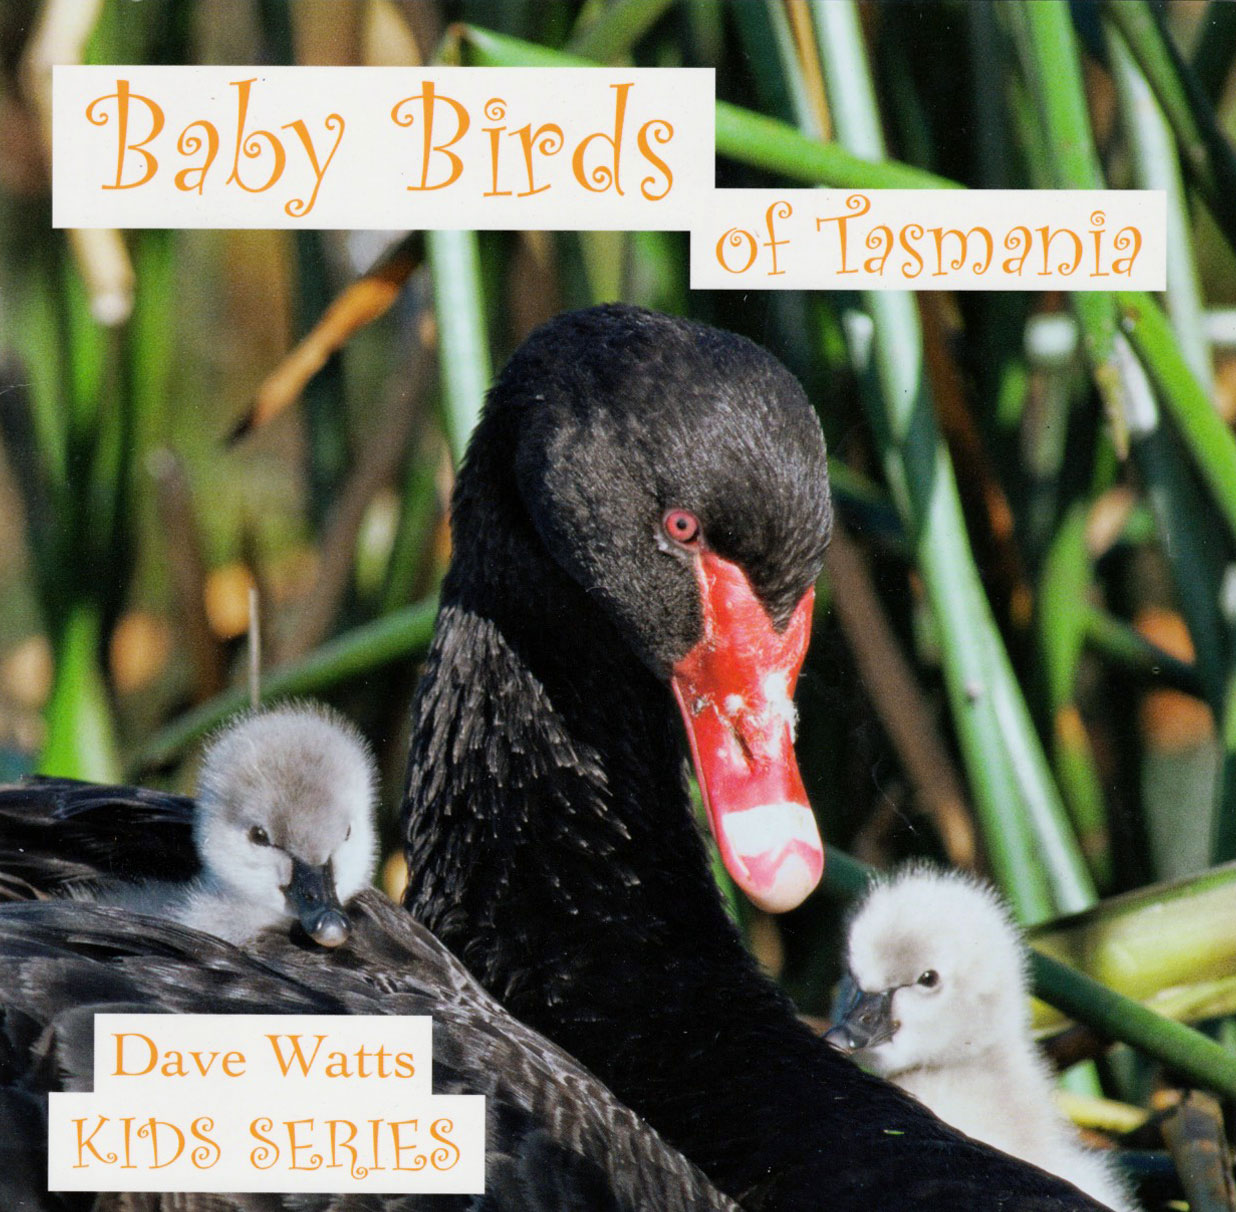 Baby Birds of Tasmania - Kids Series